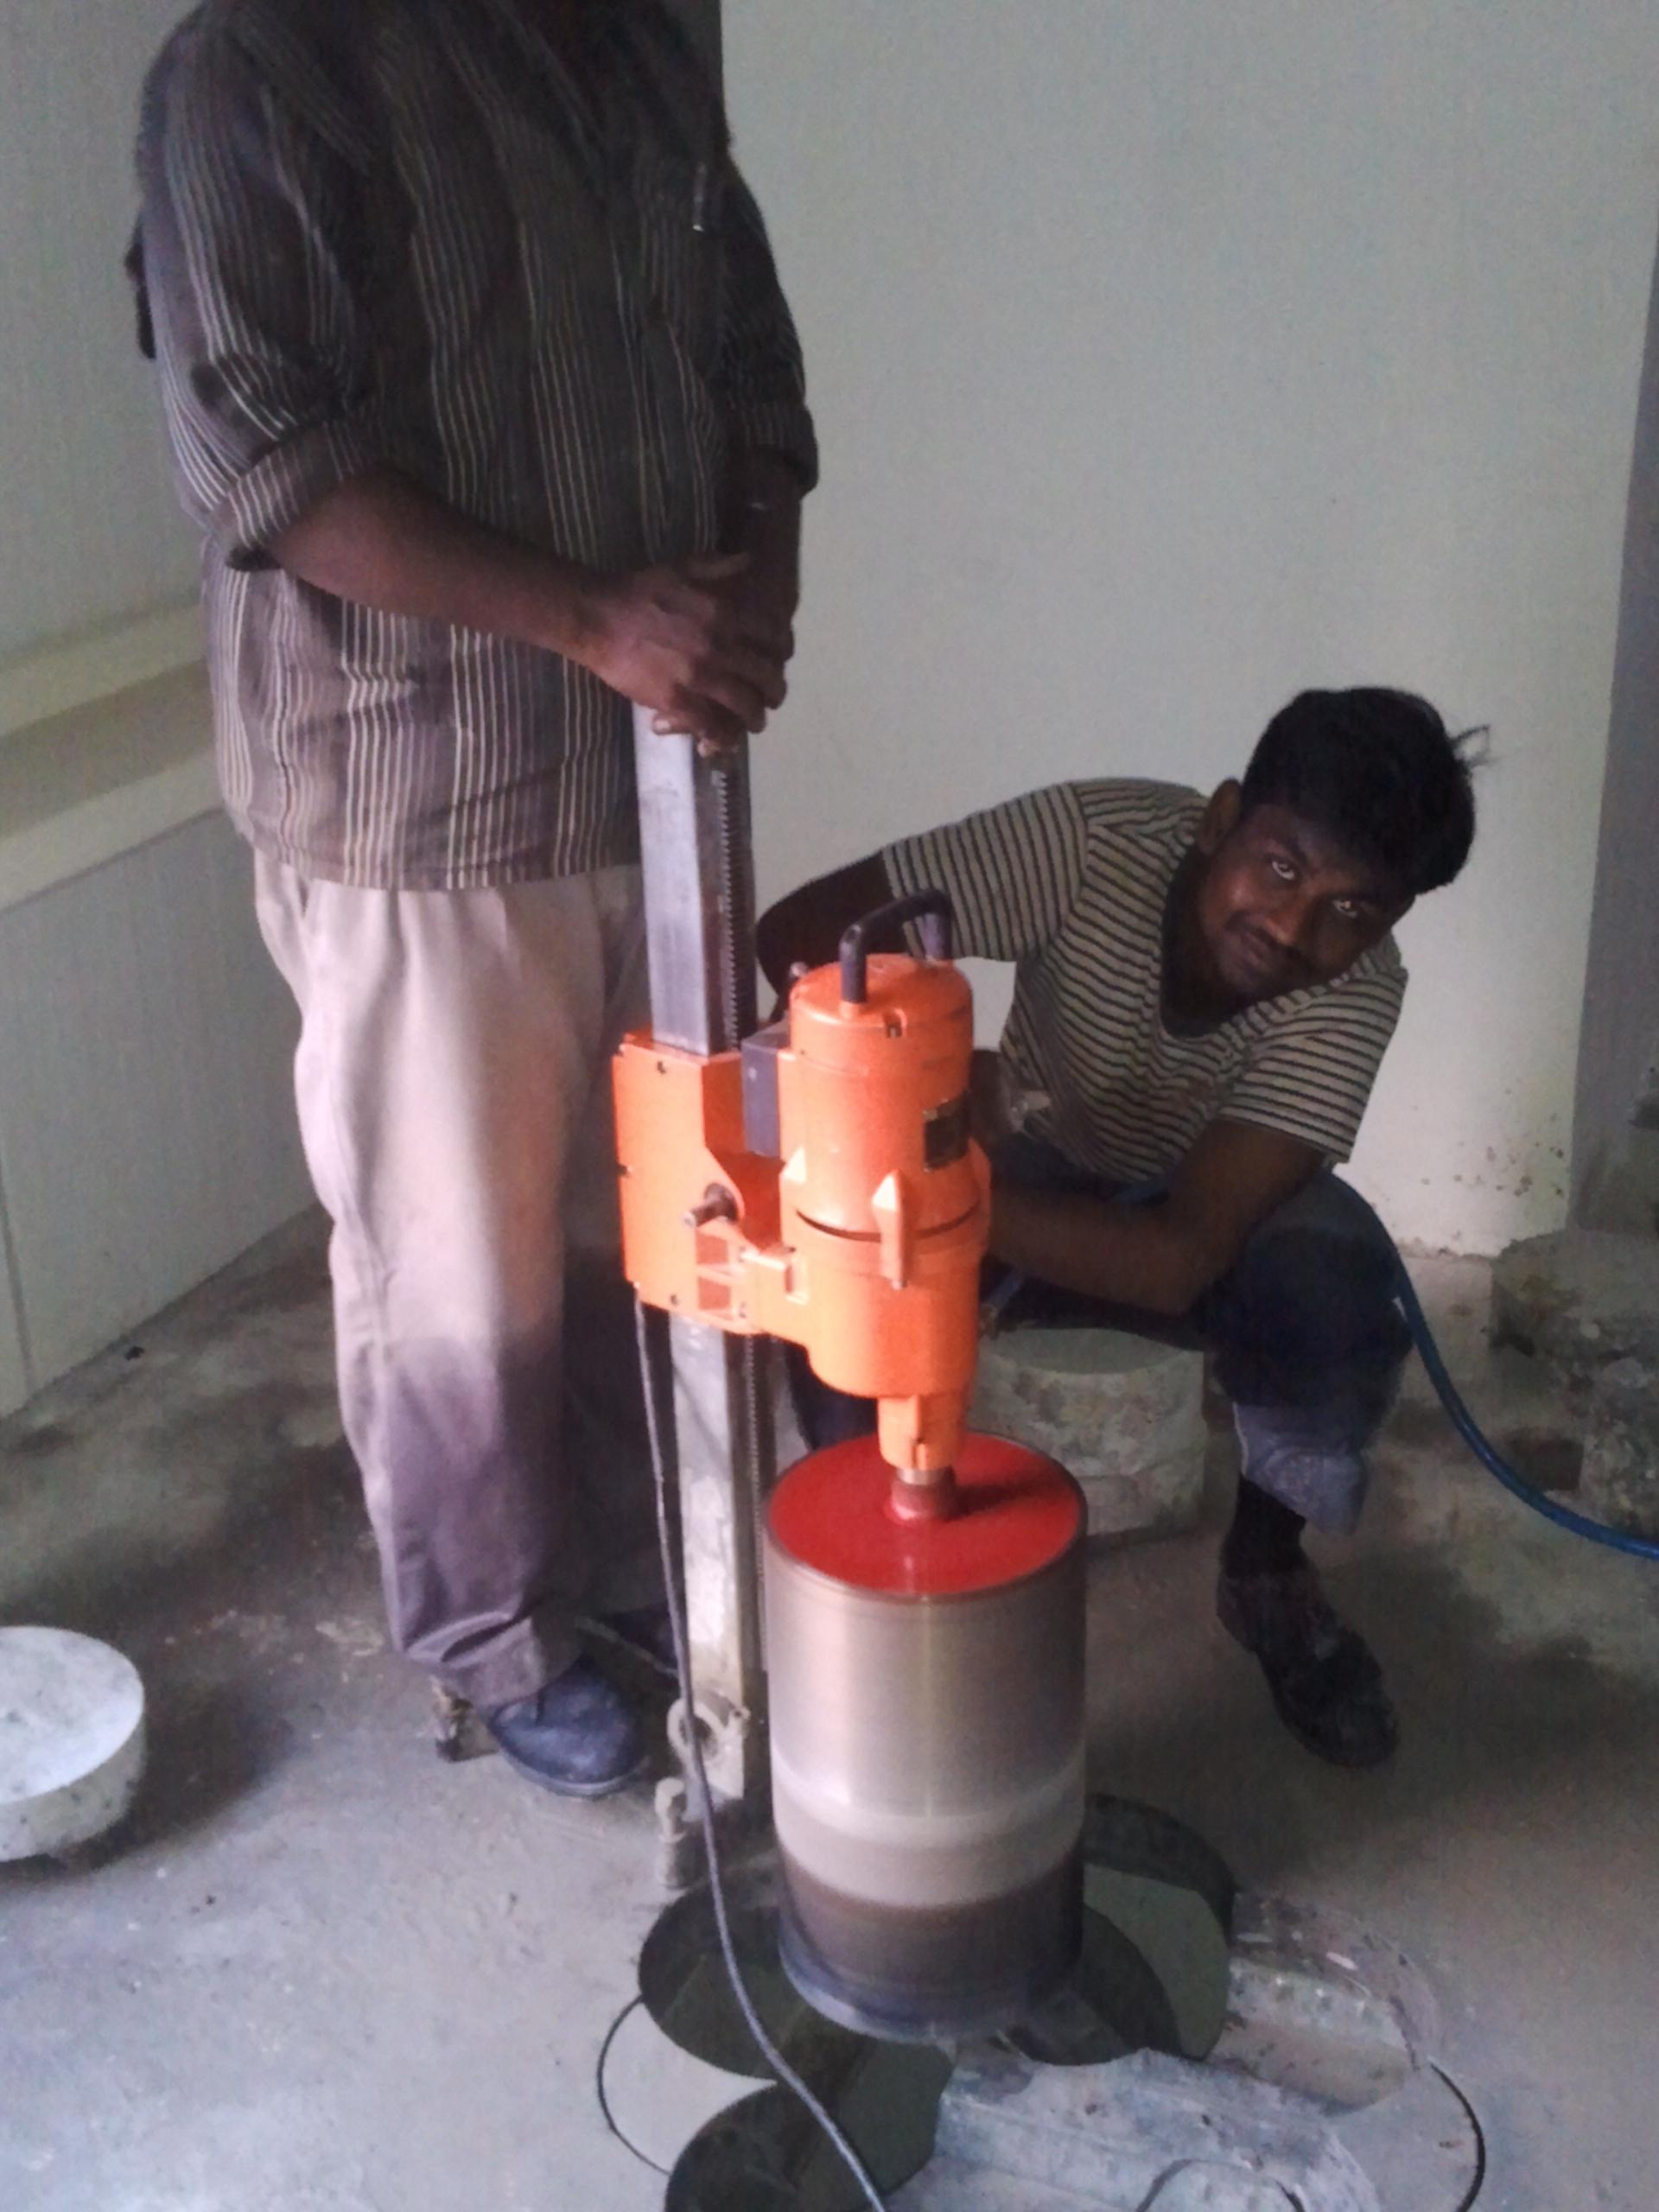 Rcc concrete core cutting/dril....